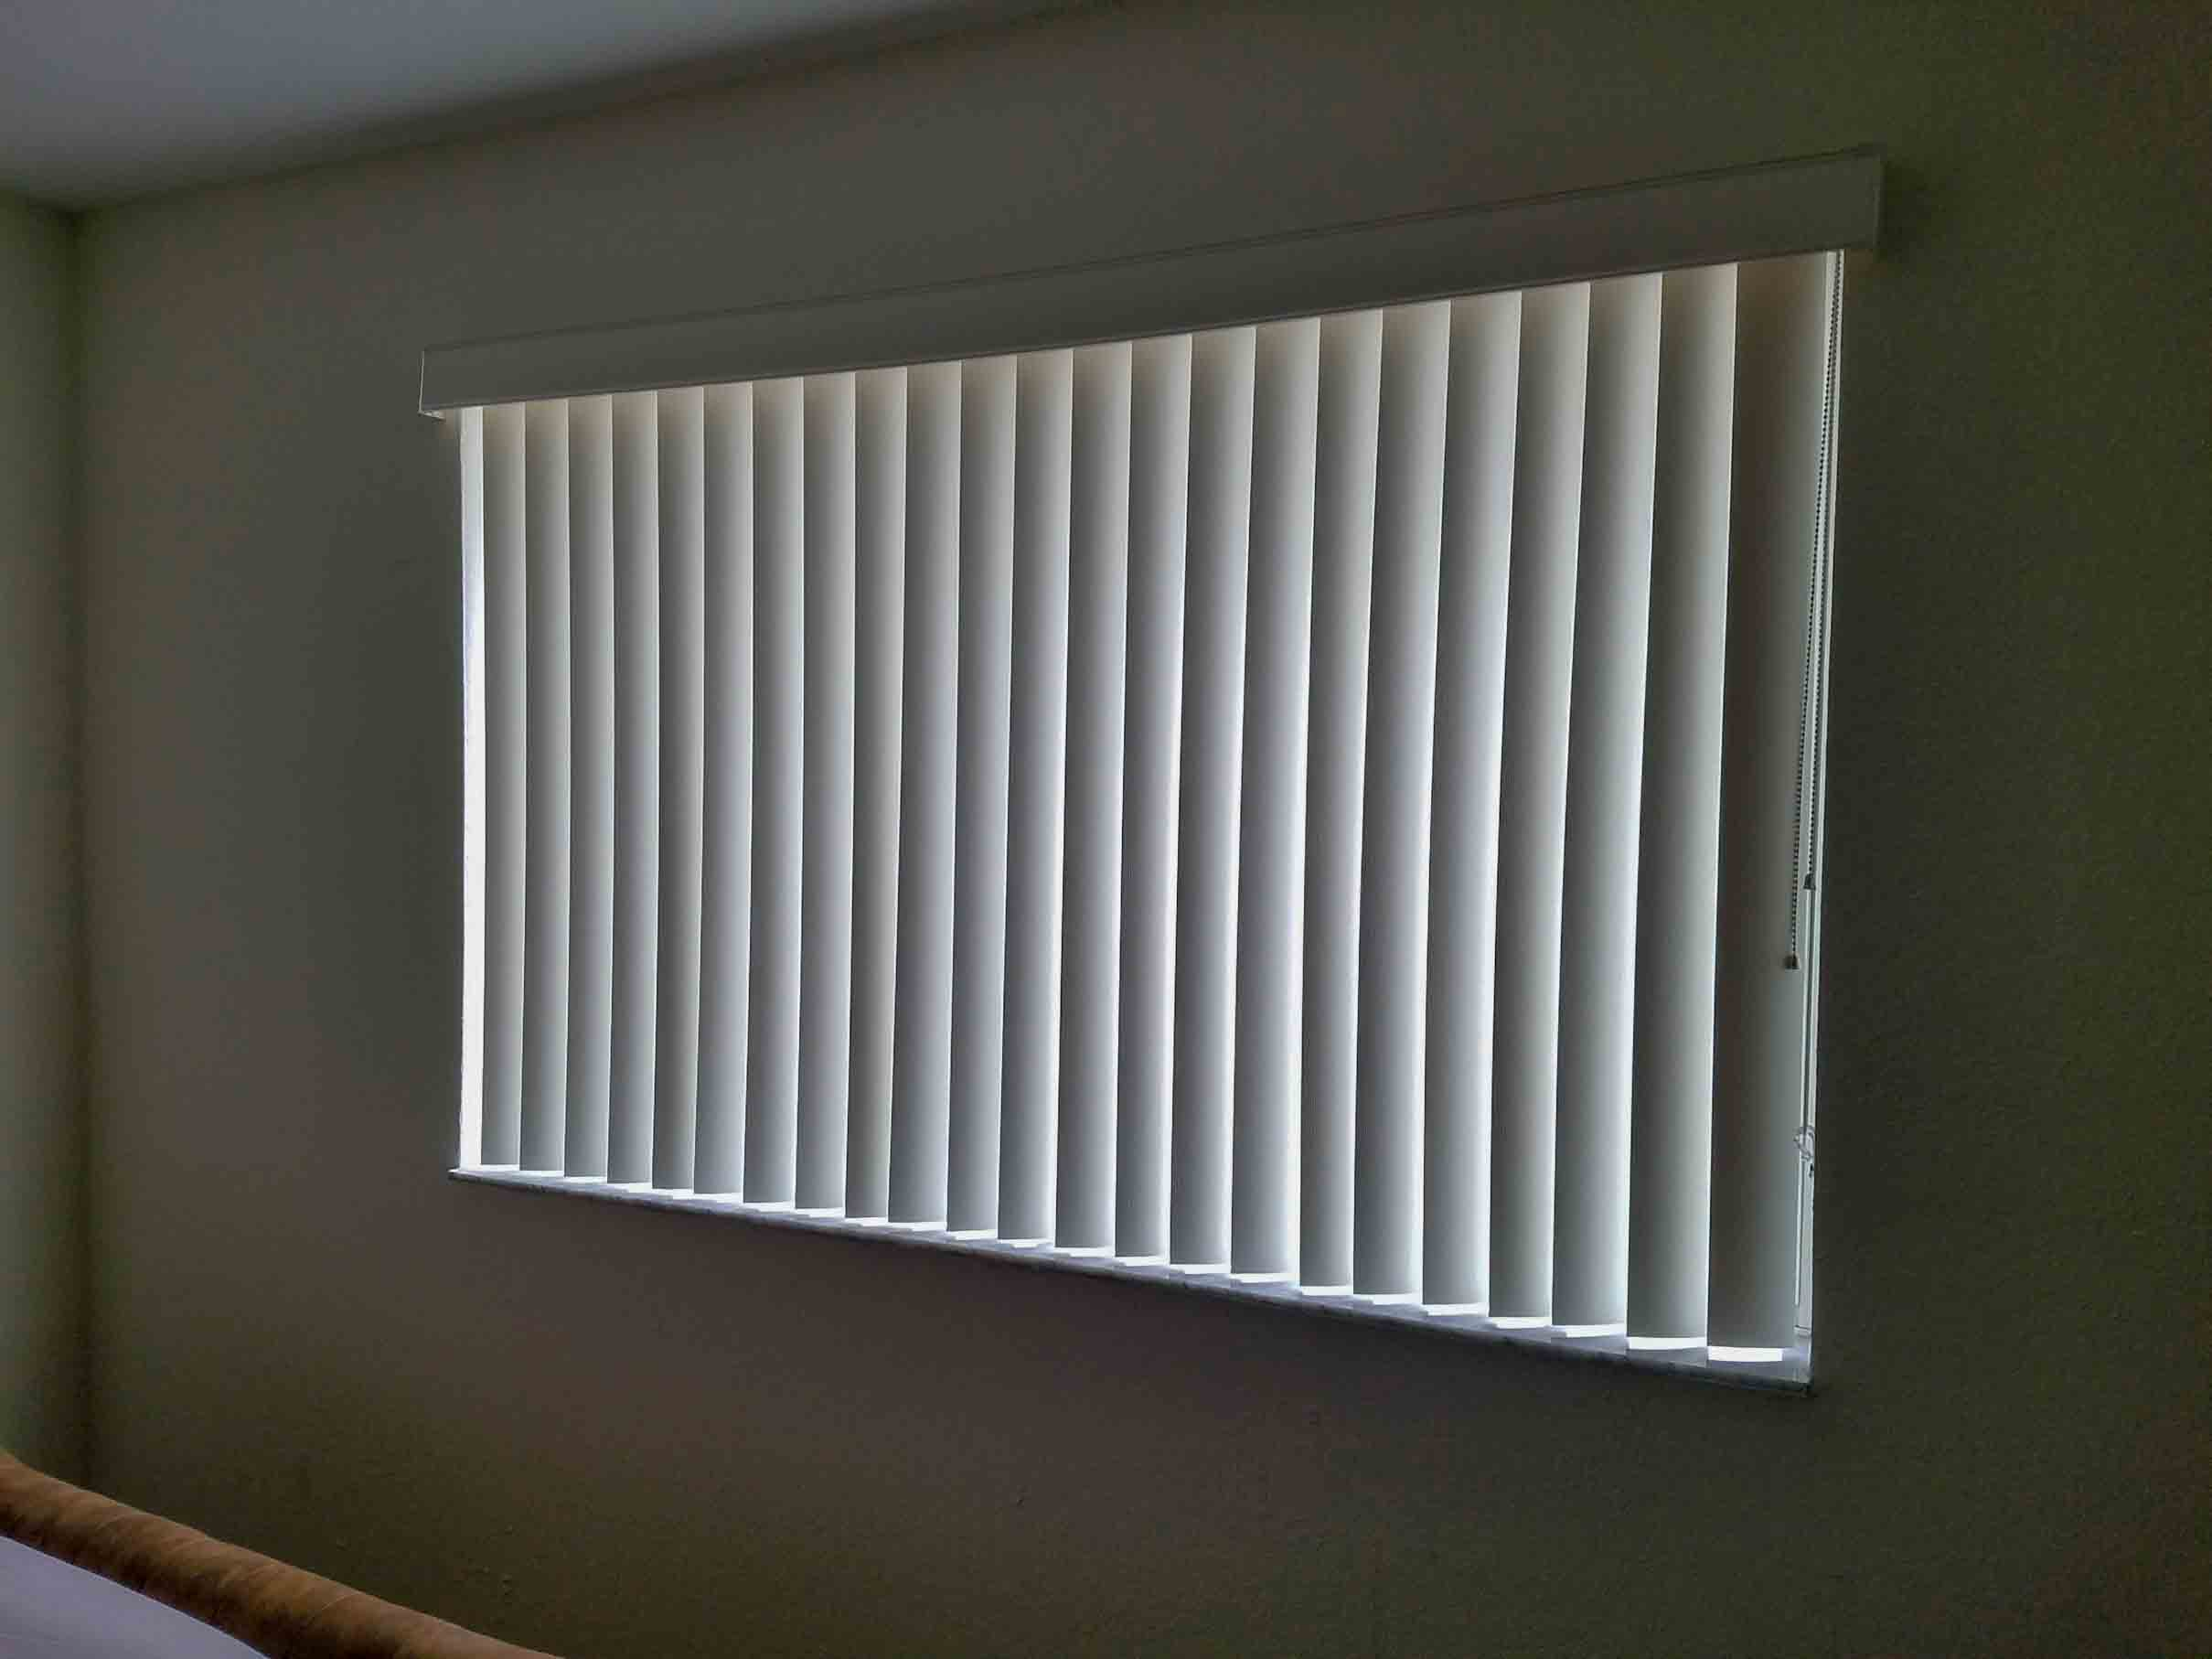 wood blinds gallery WOOD BLINDS GALLERY 20180222 123331